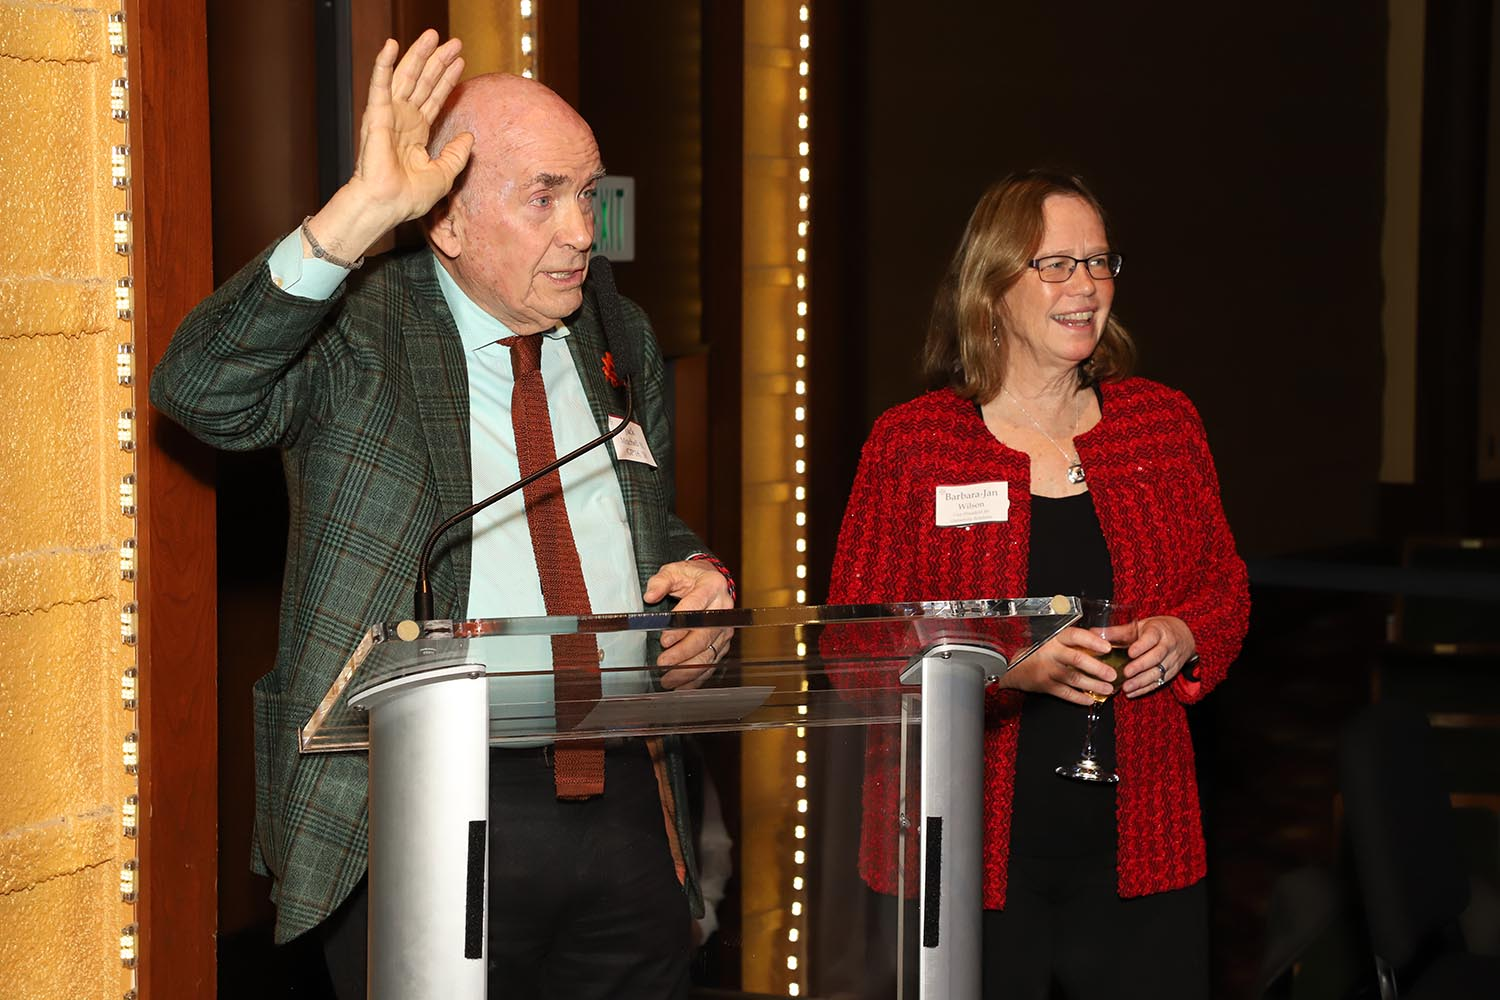 Jack Mitchell '61 gave a toast to Barbara-Jan Wilson, special advisor to the president, who in December retired as long-time vice president for University Relations.